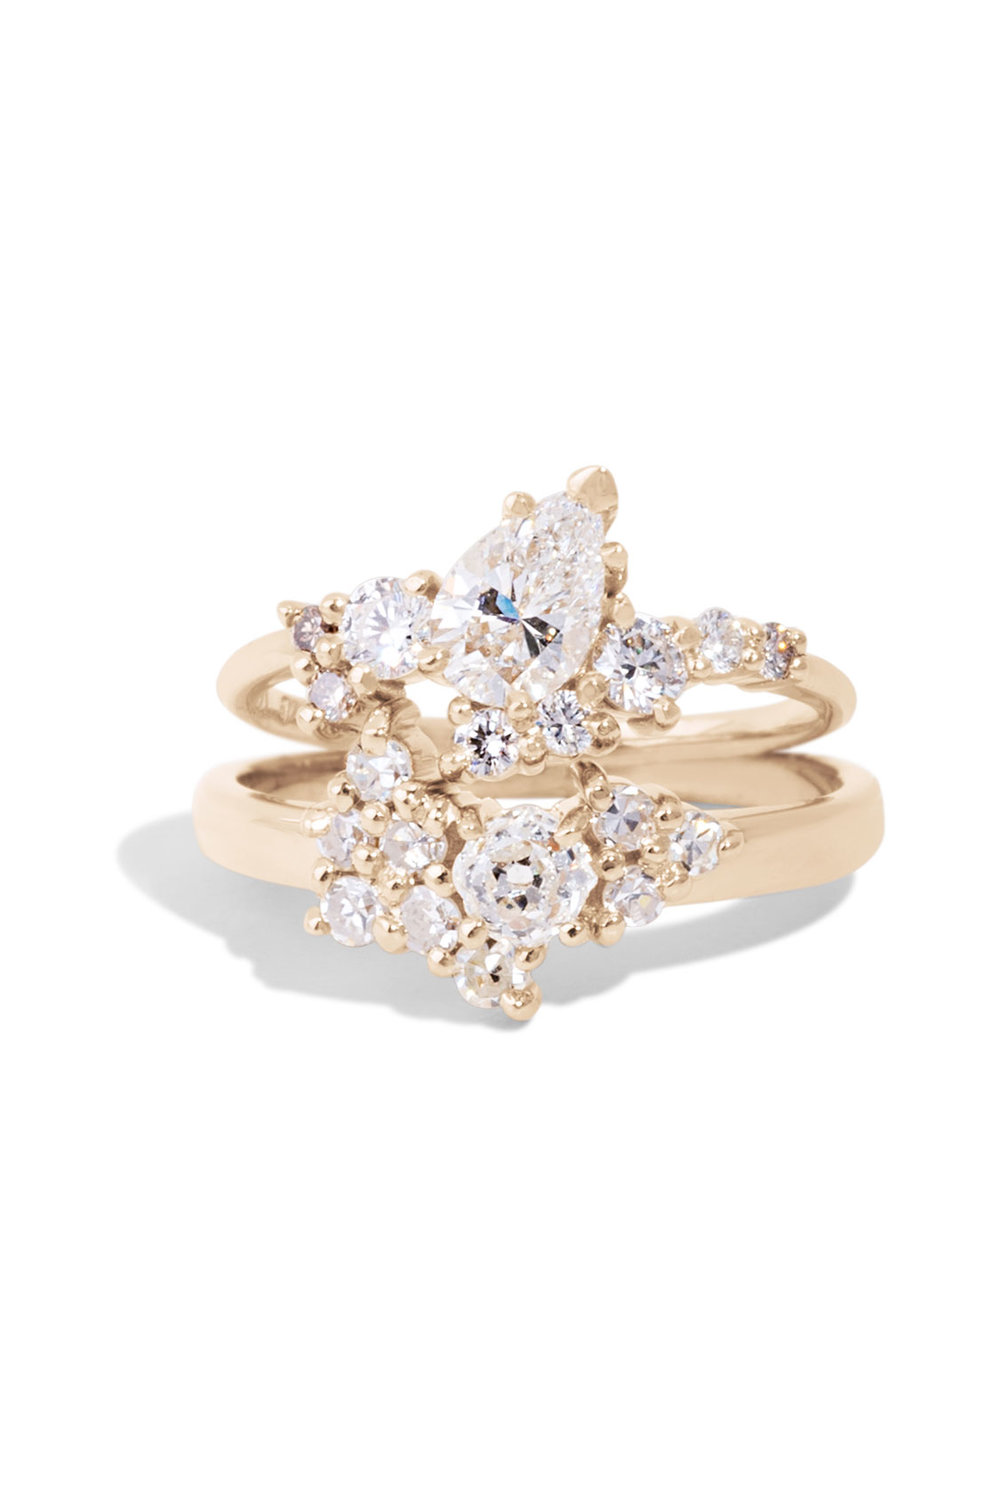 blog celebrity ethical diamond engagement jolie ring rings ritani angelina